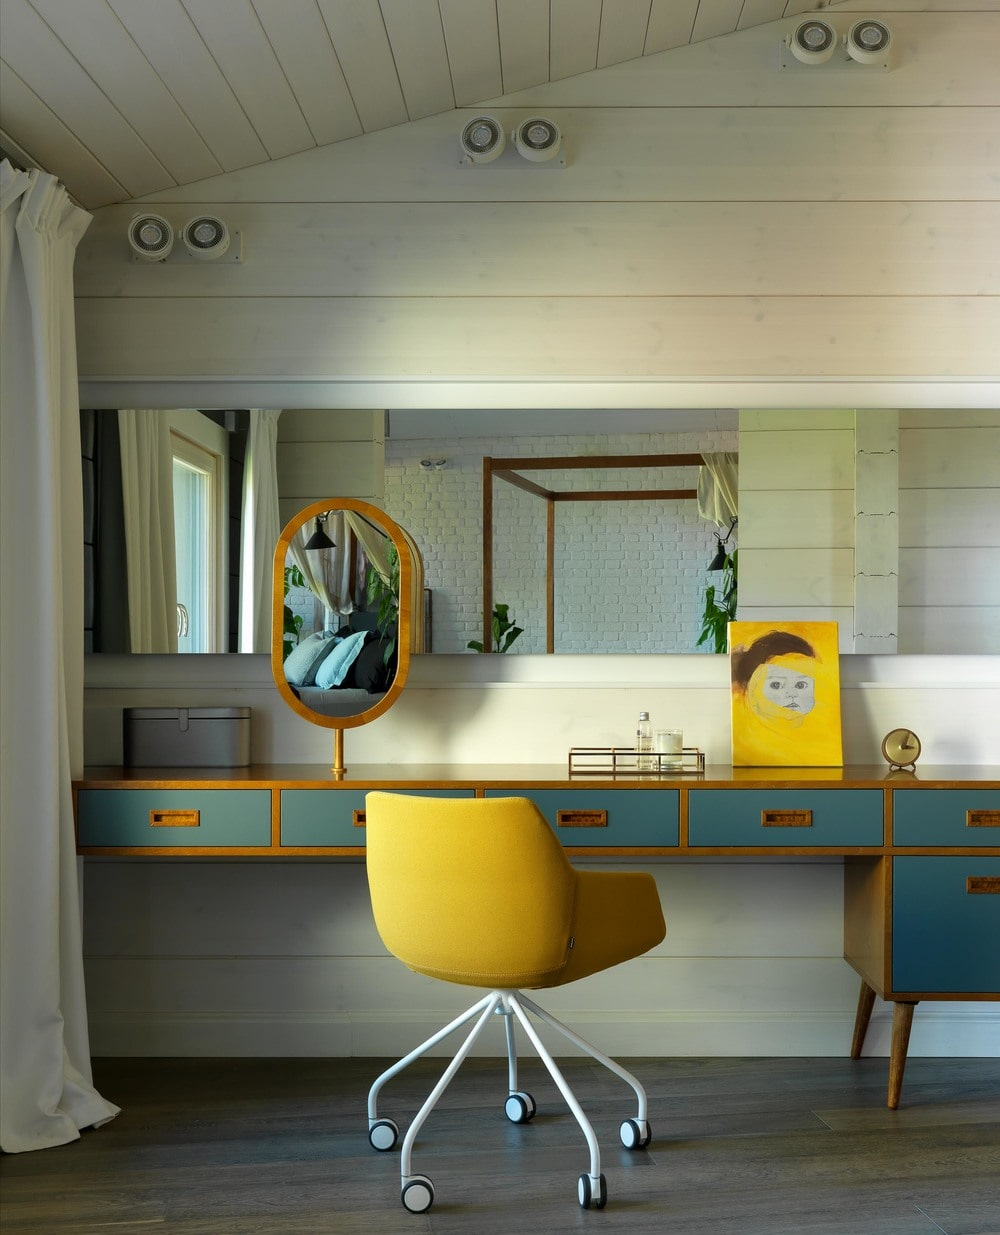 Across from the bed is this charming wooden vanity with built-in drawers painted green to stand out against the white shiplap wall with a large wall-mounted mirror and a yellow swivel chair.